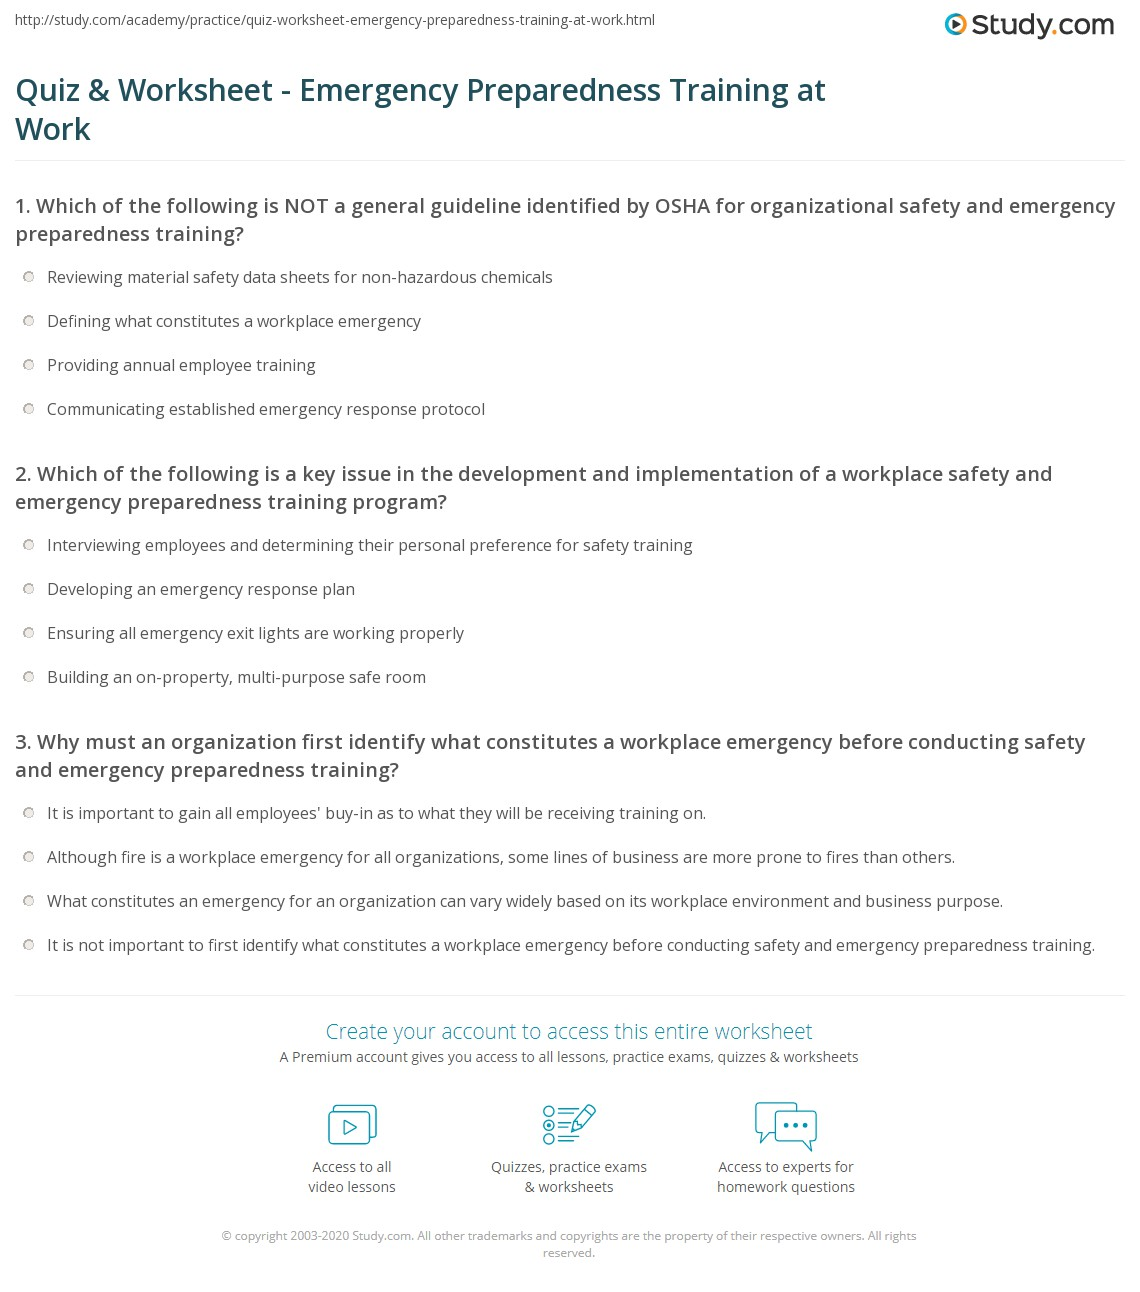 Quiz worksheet emergency preparedness training at work study which of the following is a key issue in the development and implementation of a workplace safety and emergency preparedness training program 1betcityfo Images